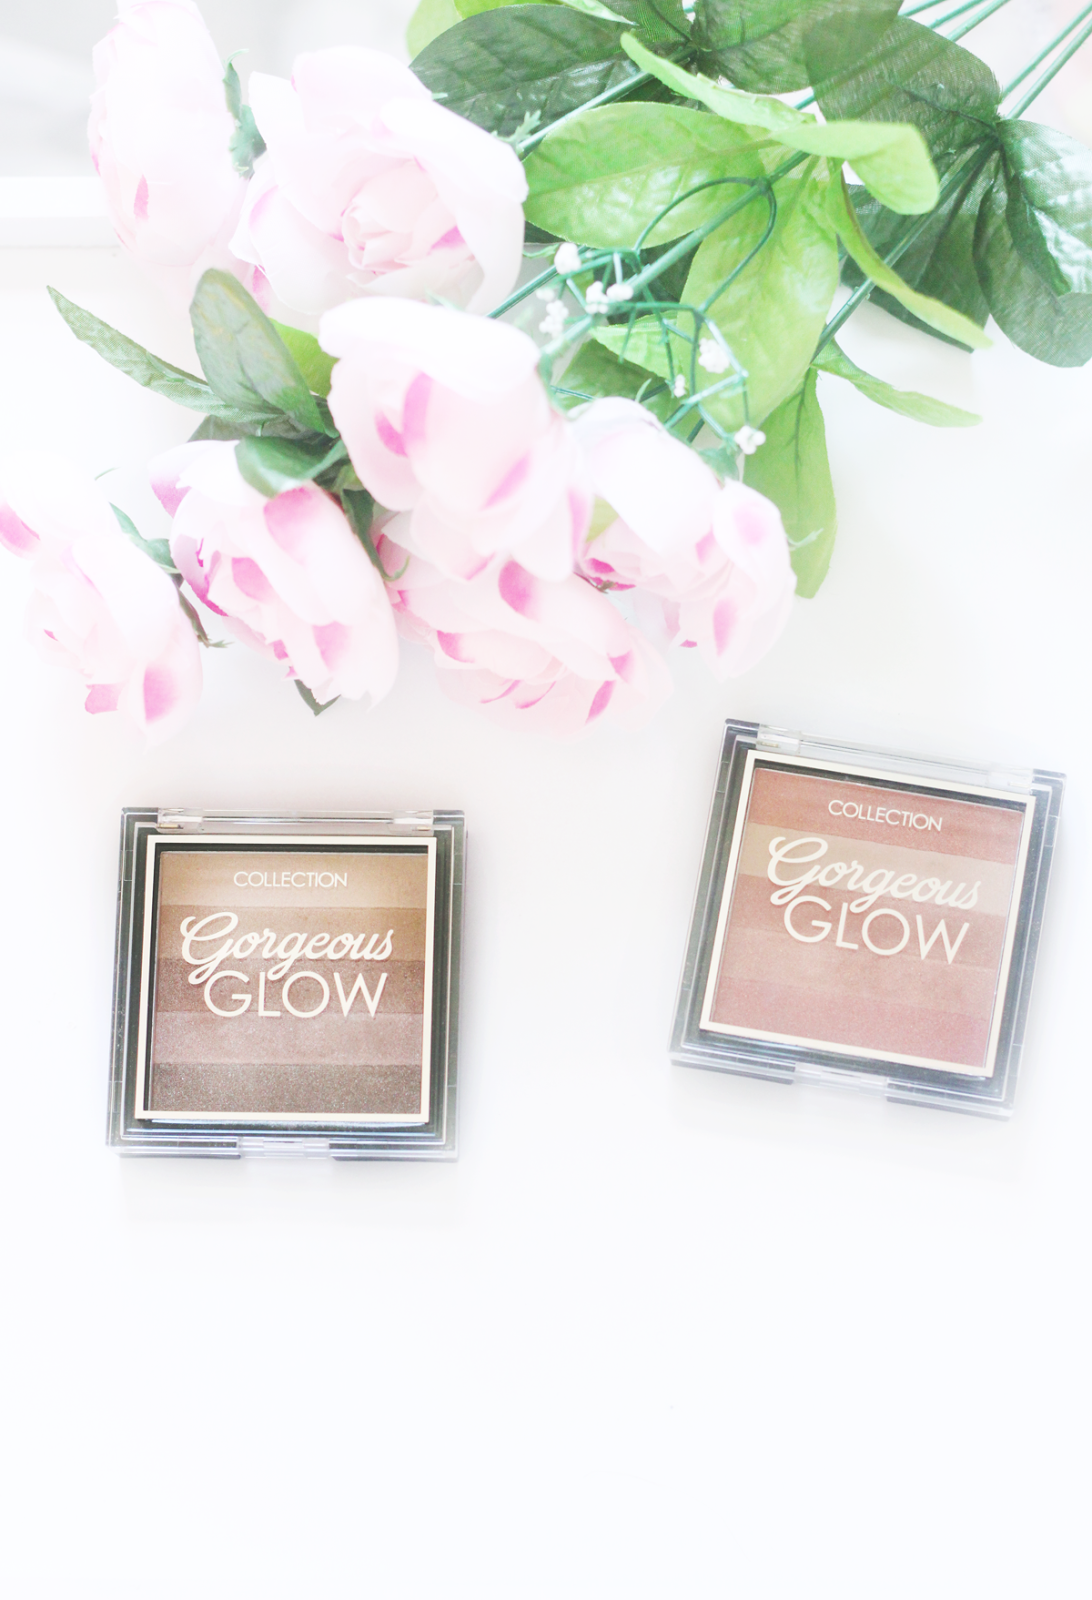 An image of the COLLECTION Cosmetics Gorgeous Glow bricks